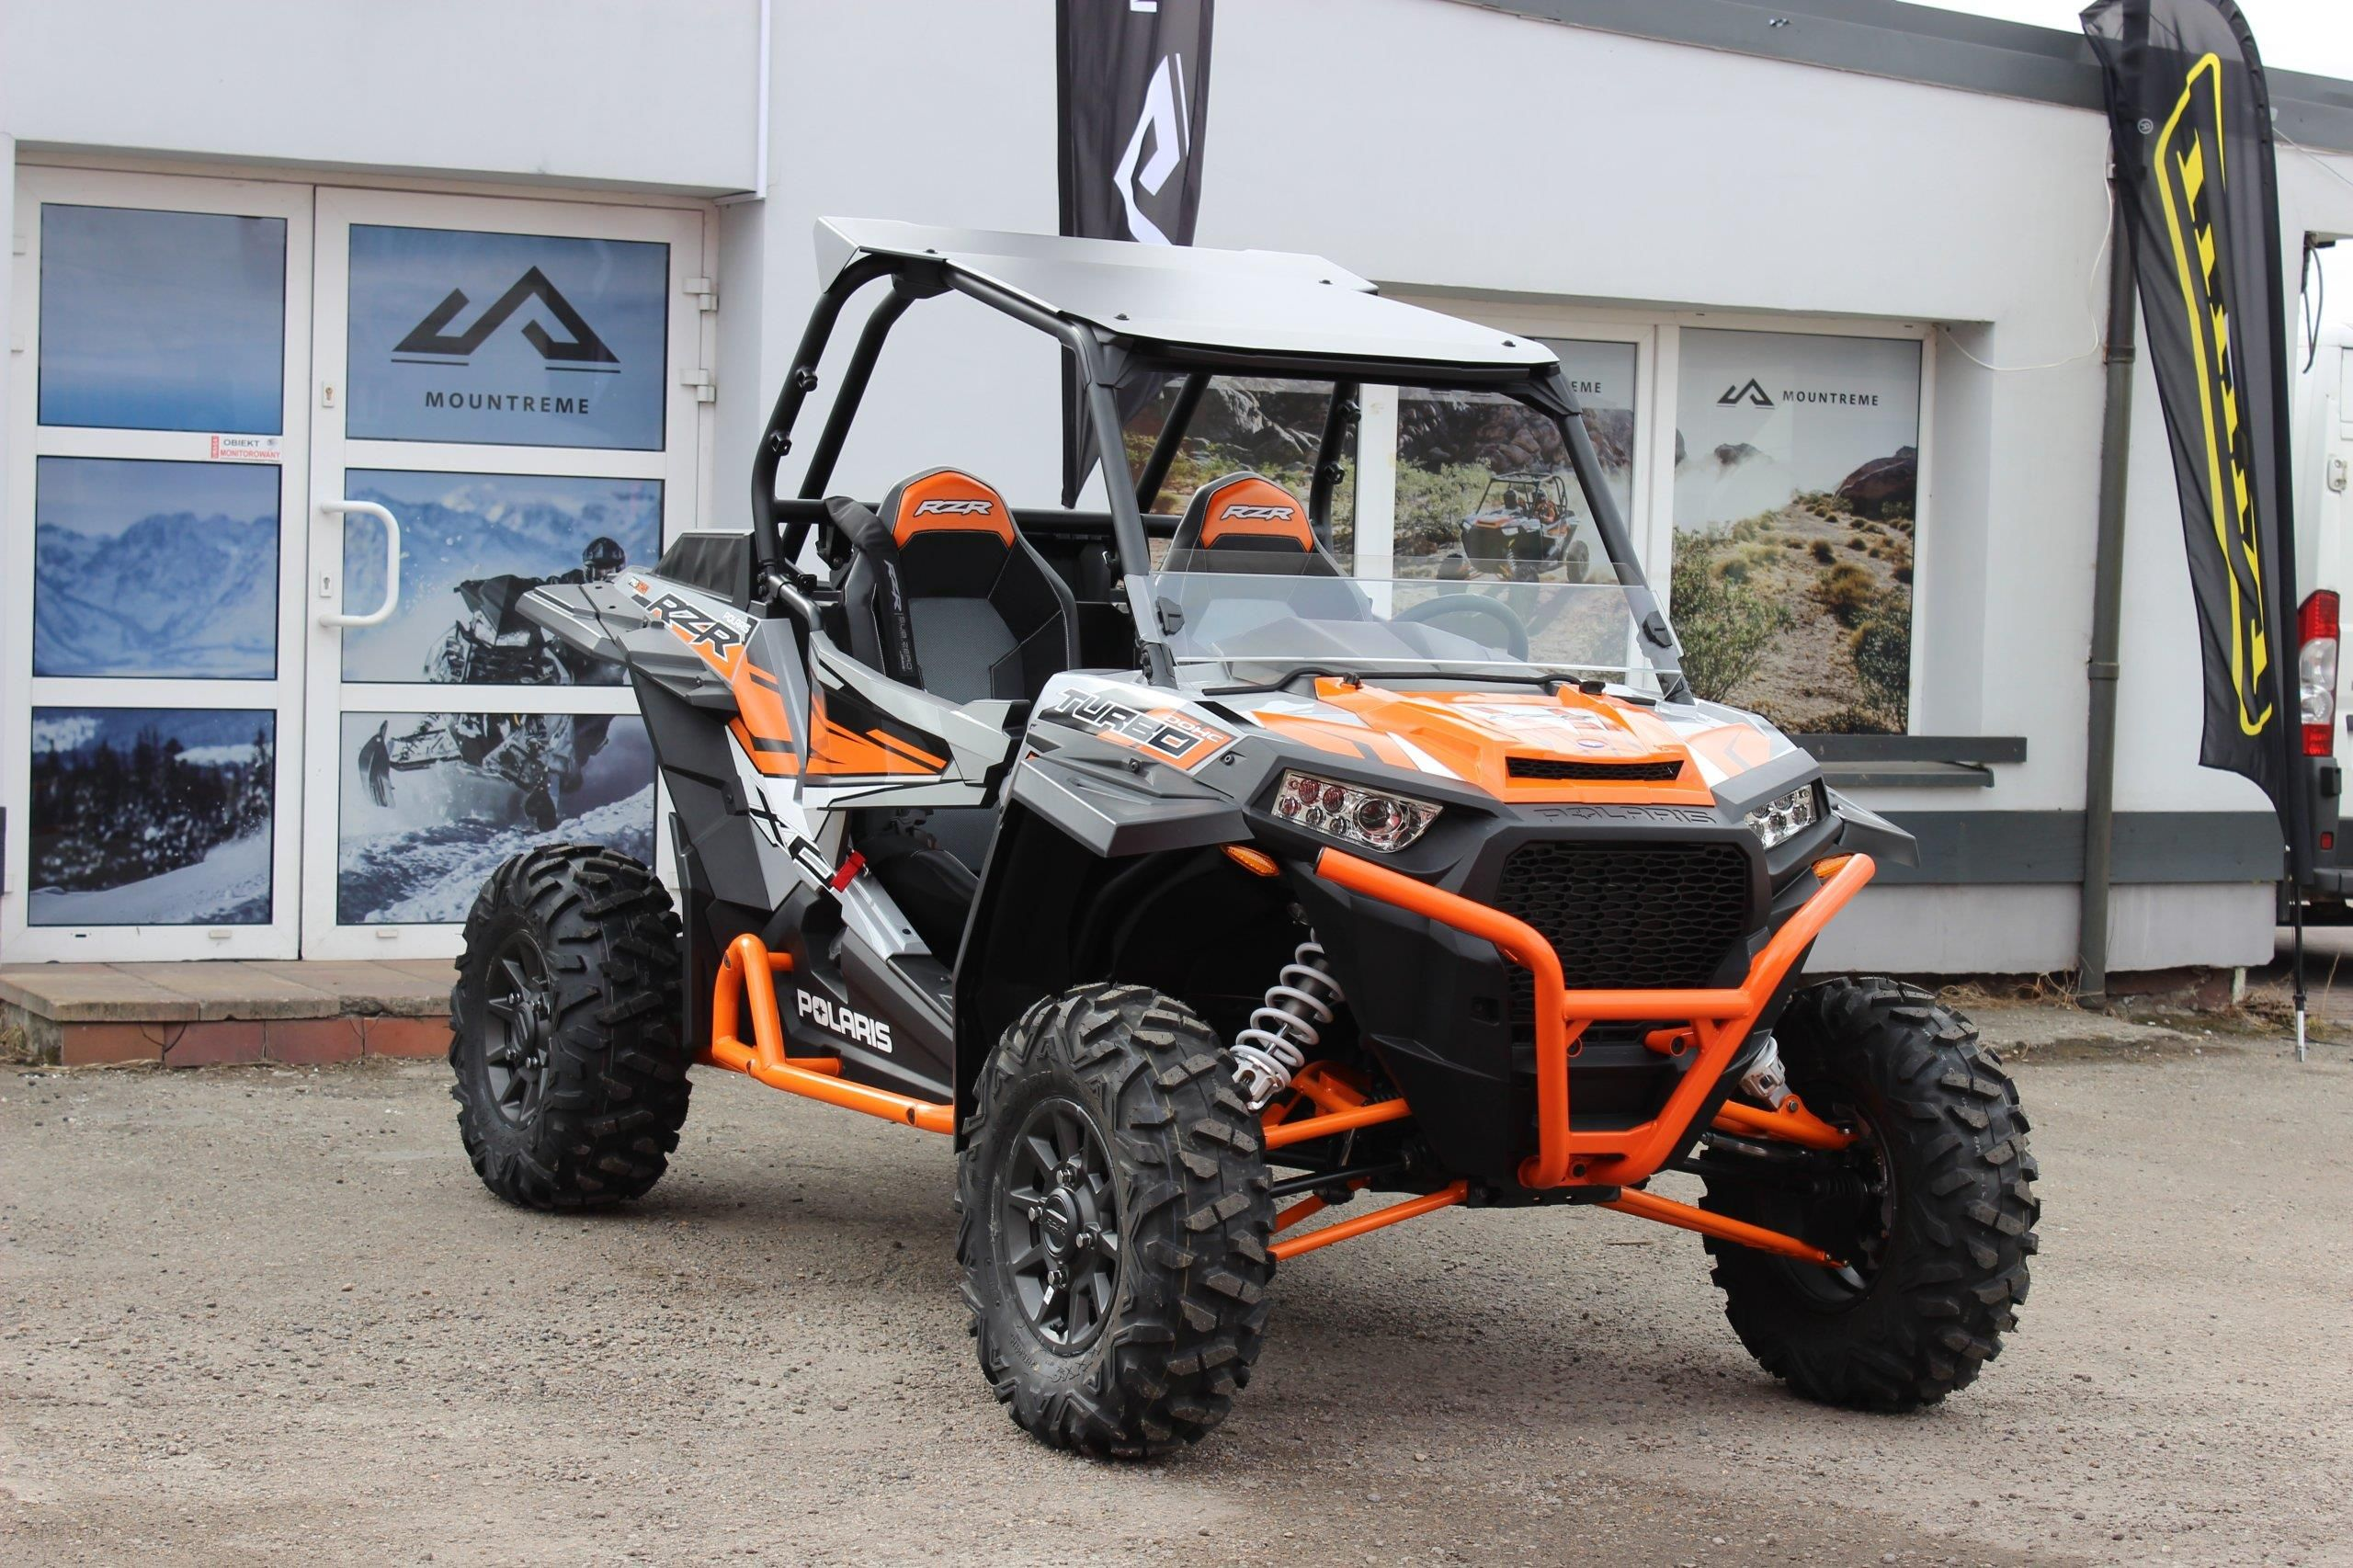 polaris rzr xp 1000 turbo eps dealer mountreme opinie i ceny na. Black Bedroom Furniture Sets. Home Design Ideas